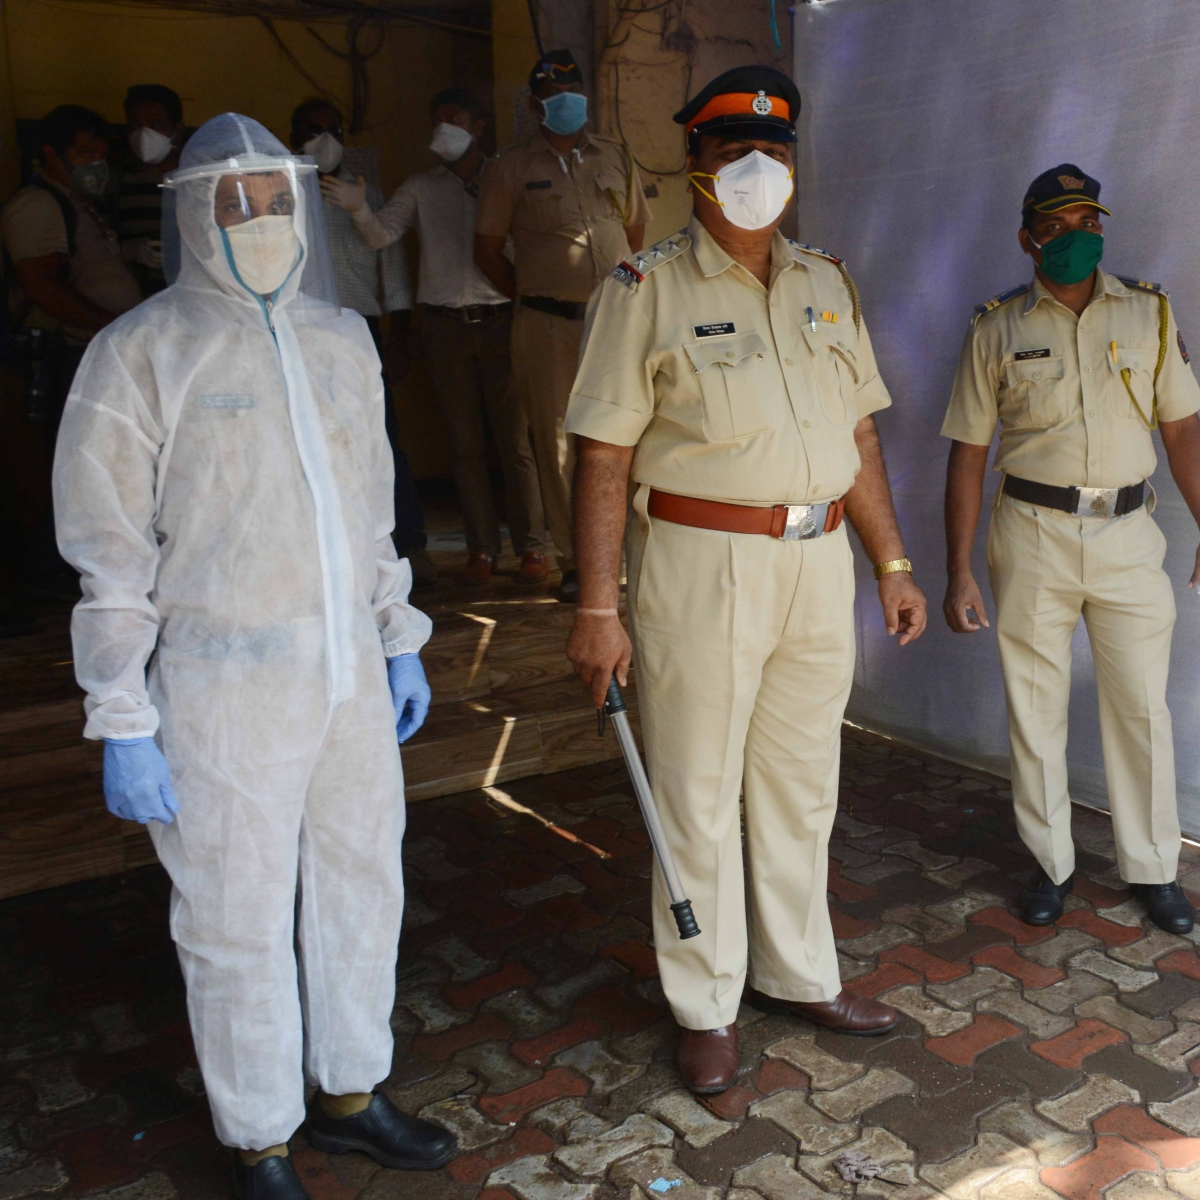 Coronavirus in Mumbai: After GPS alert, four booked for defying quarantine in Mira Road